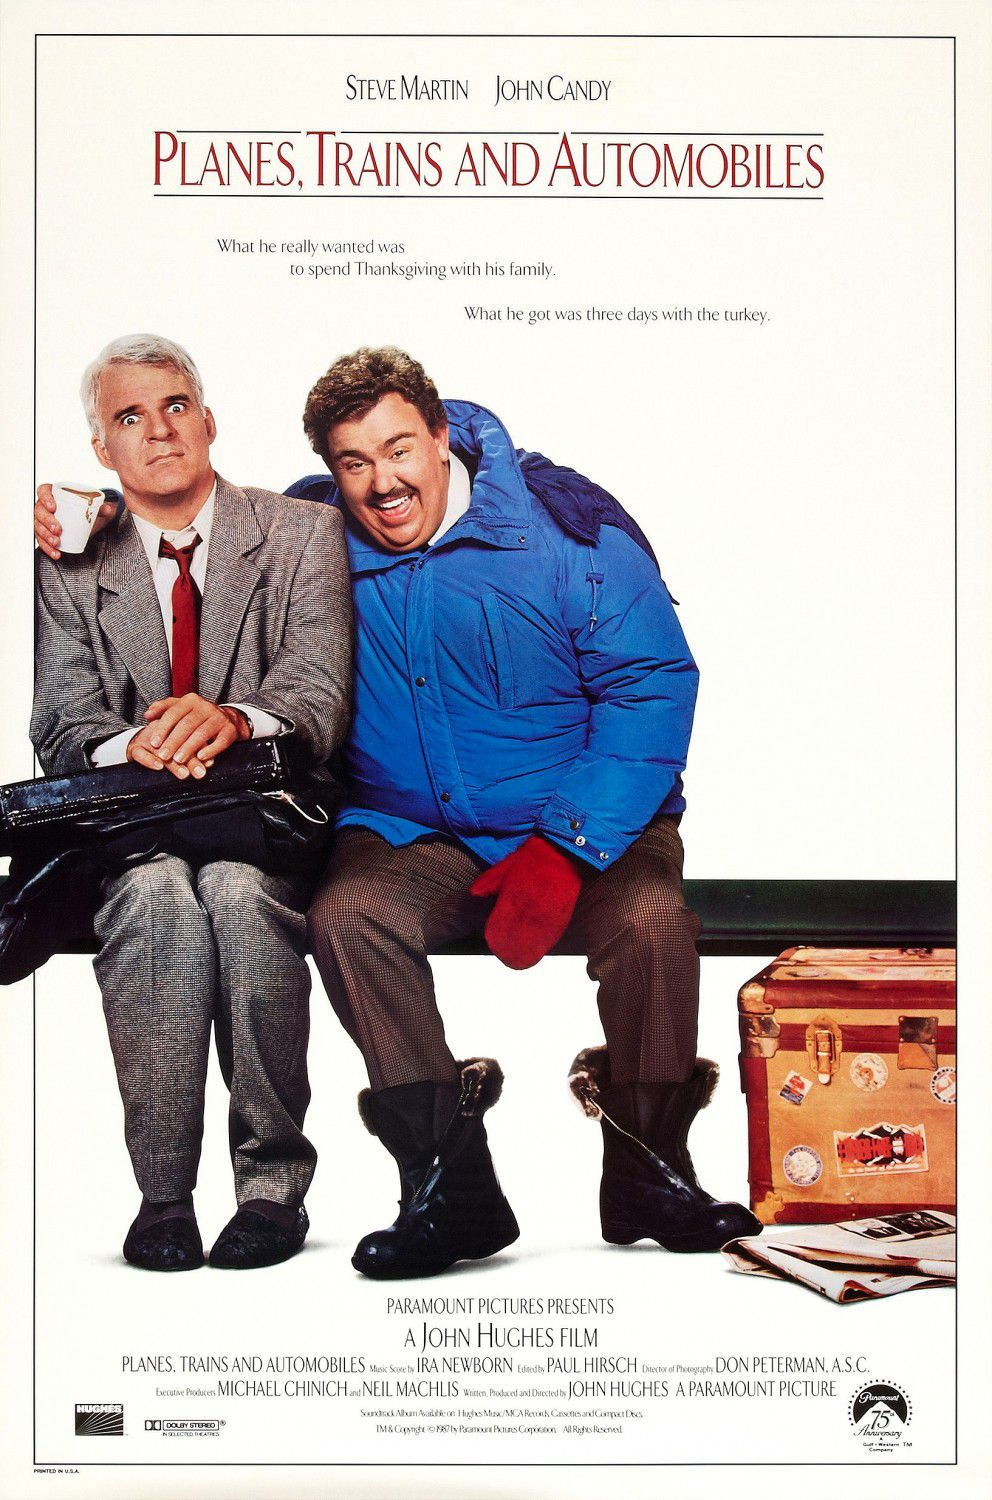 Un Biglietto per Due - Planes Trains and Automobiles - a Ticket pour deux